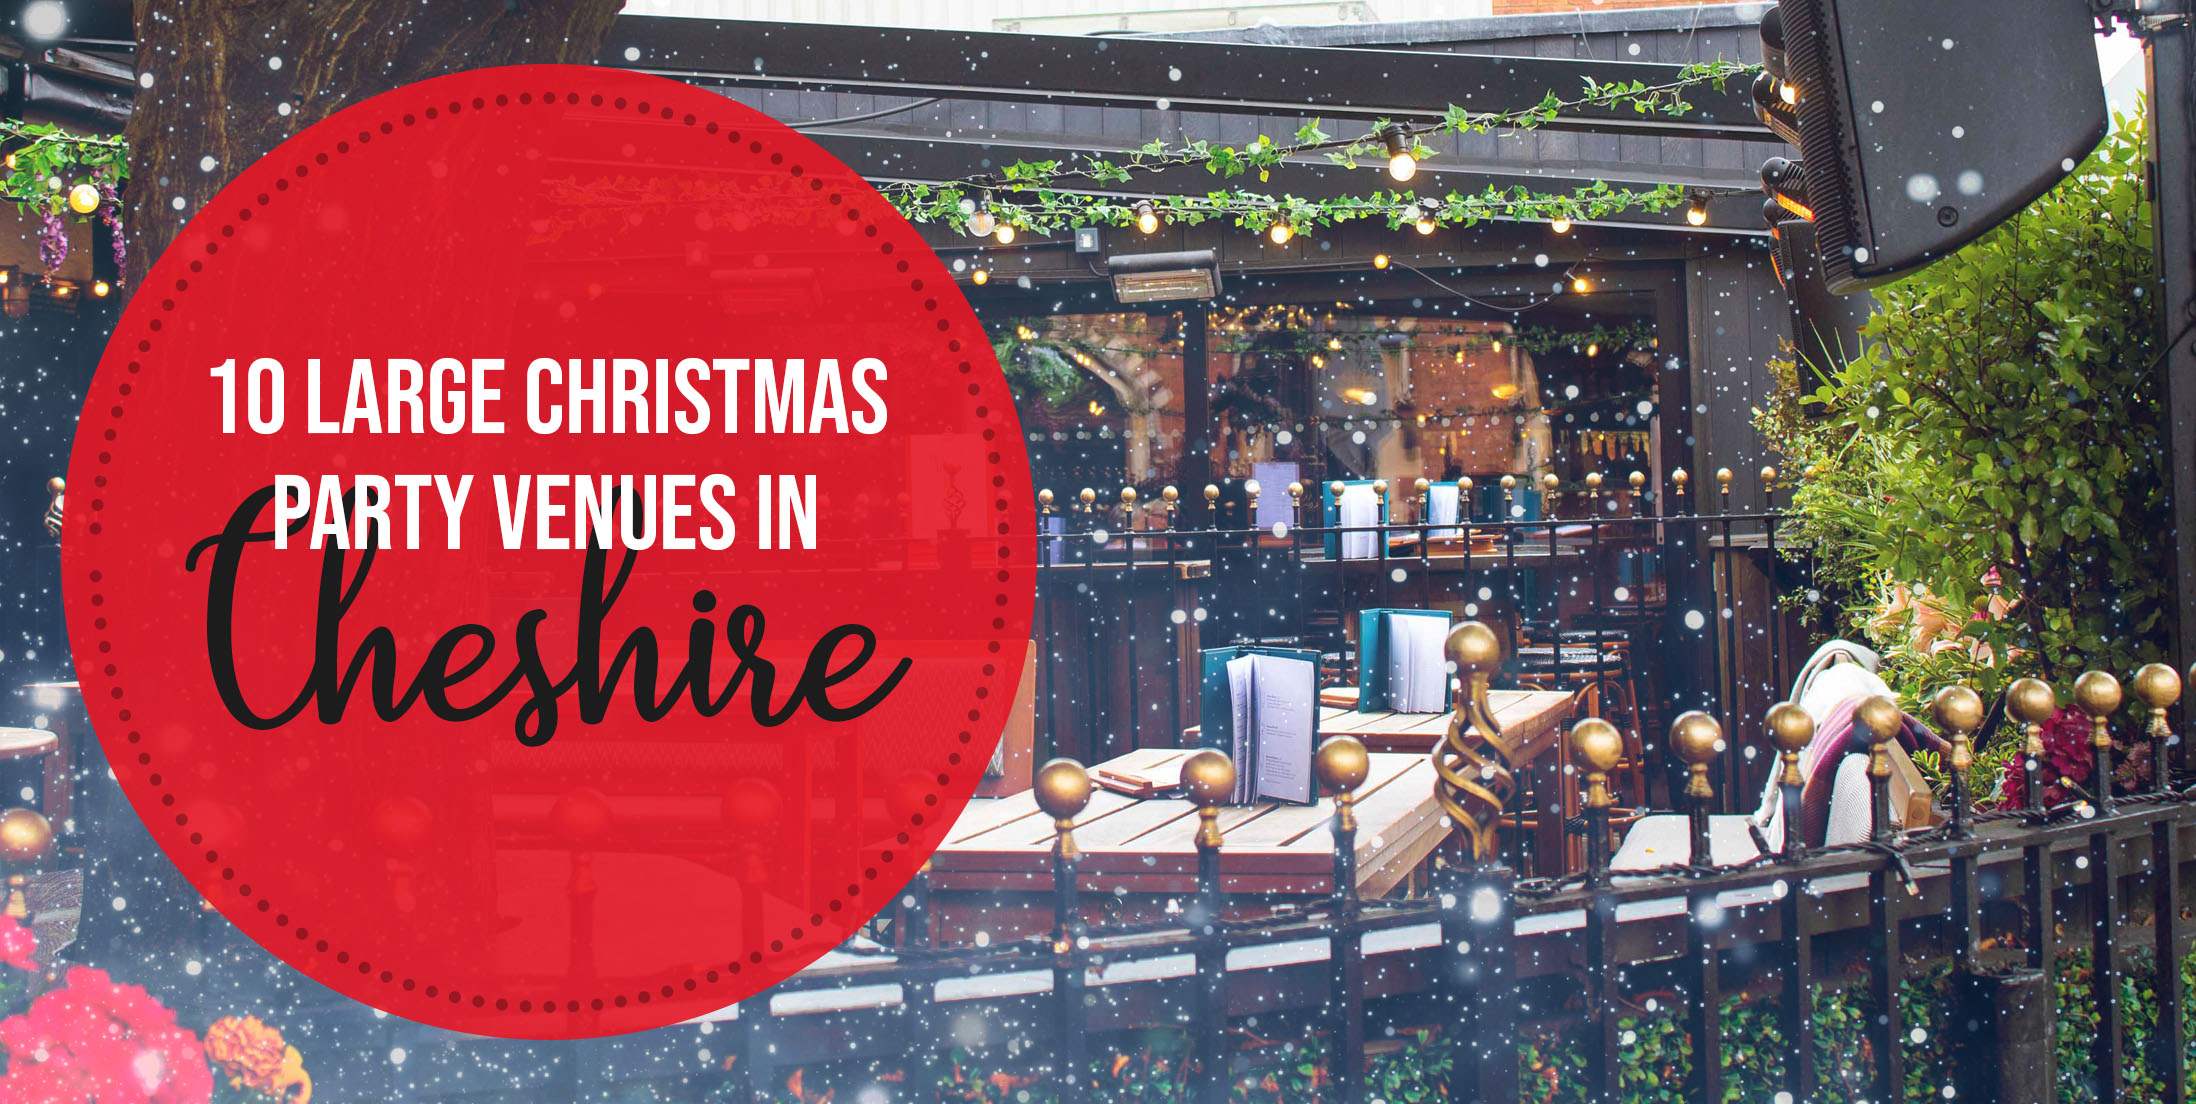 10 Large Christmas Party Venues in Cheshire